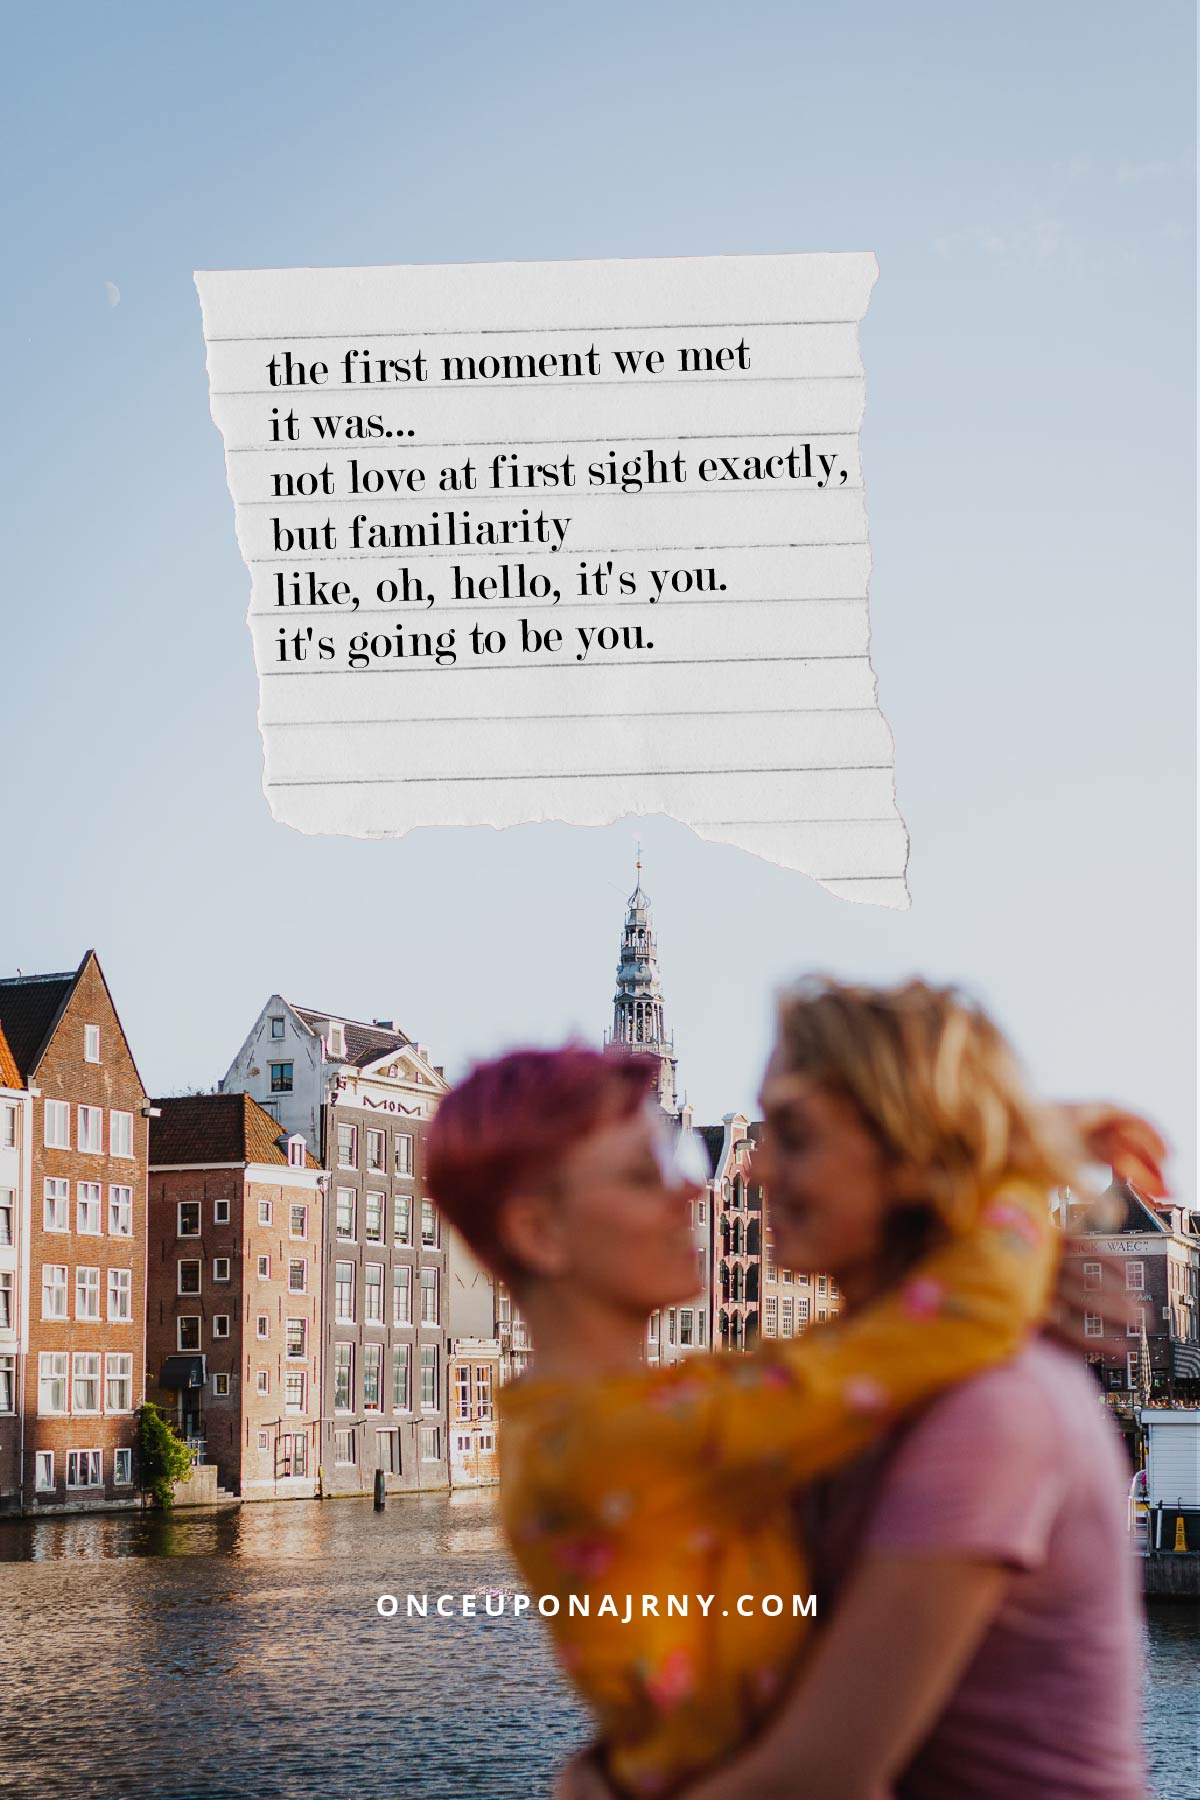 The first moment we met. It was... Not love at first sight exactly, but familiarity. Like oh, hello, it's you. It's going to be you lesbian love quotes